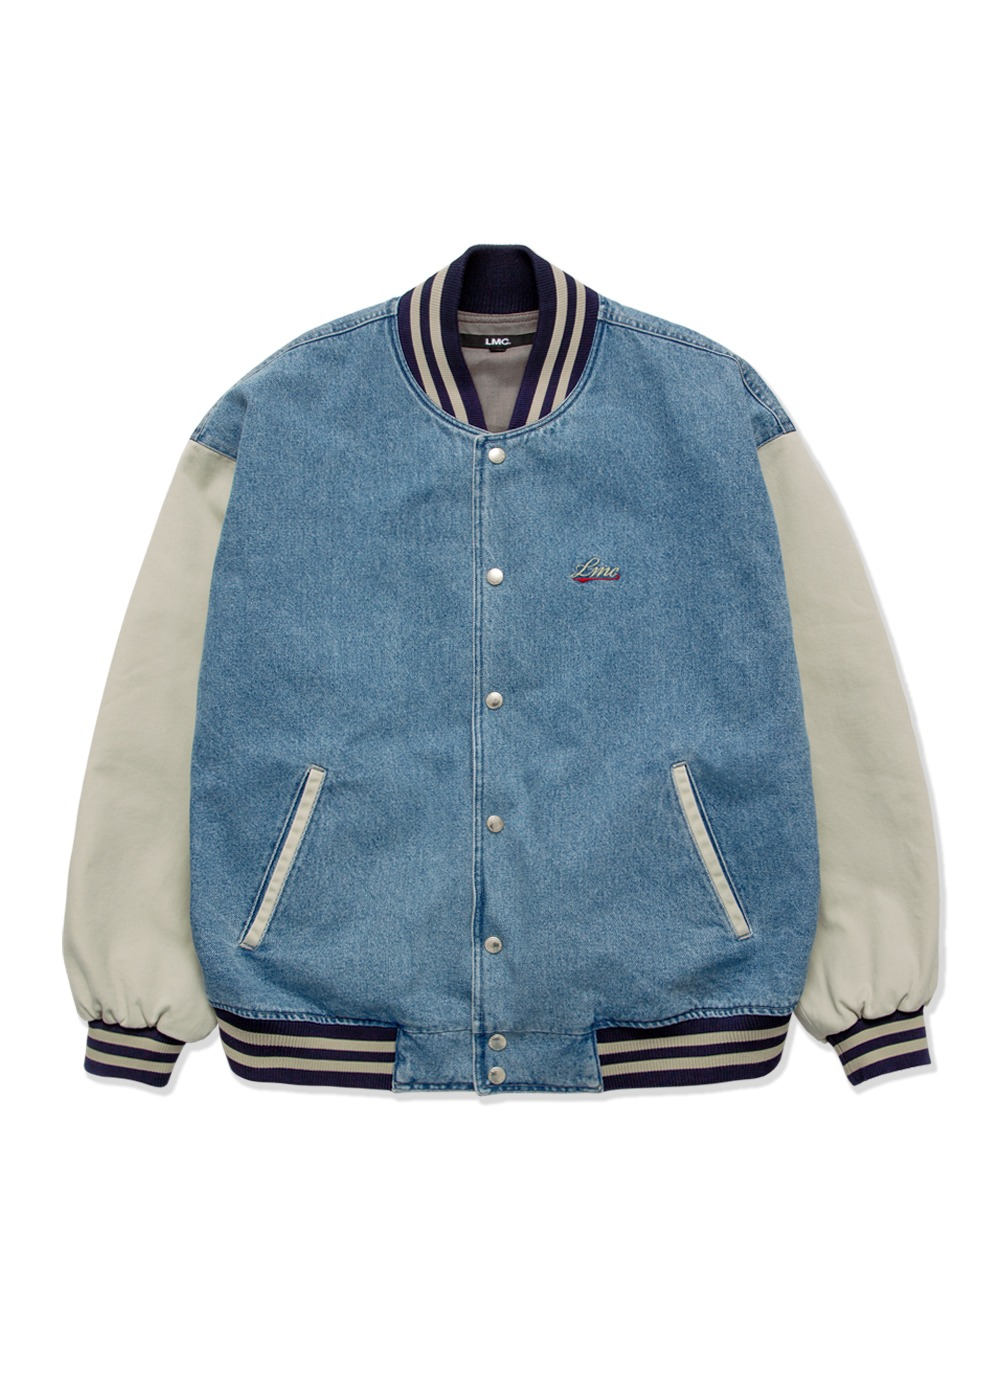 LMC WASHED DENIM BASEBALL JACKET blue